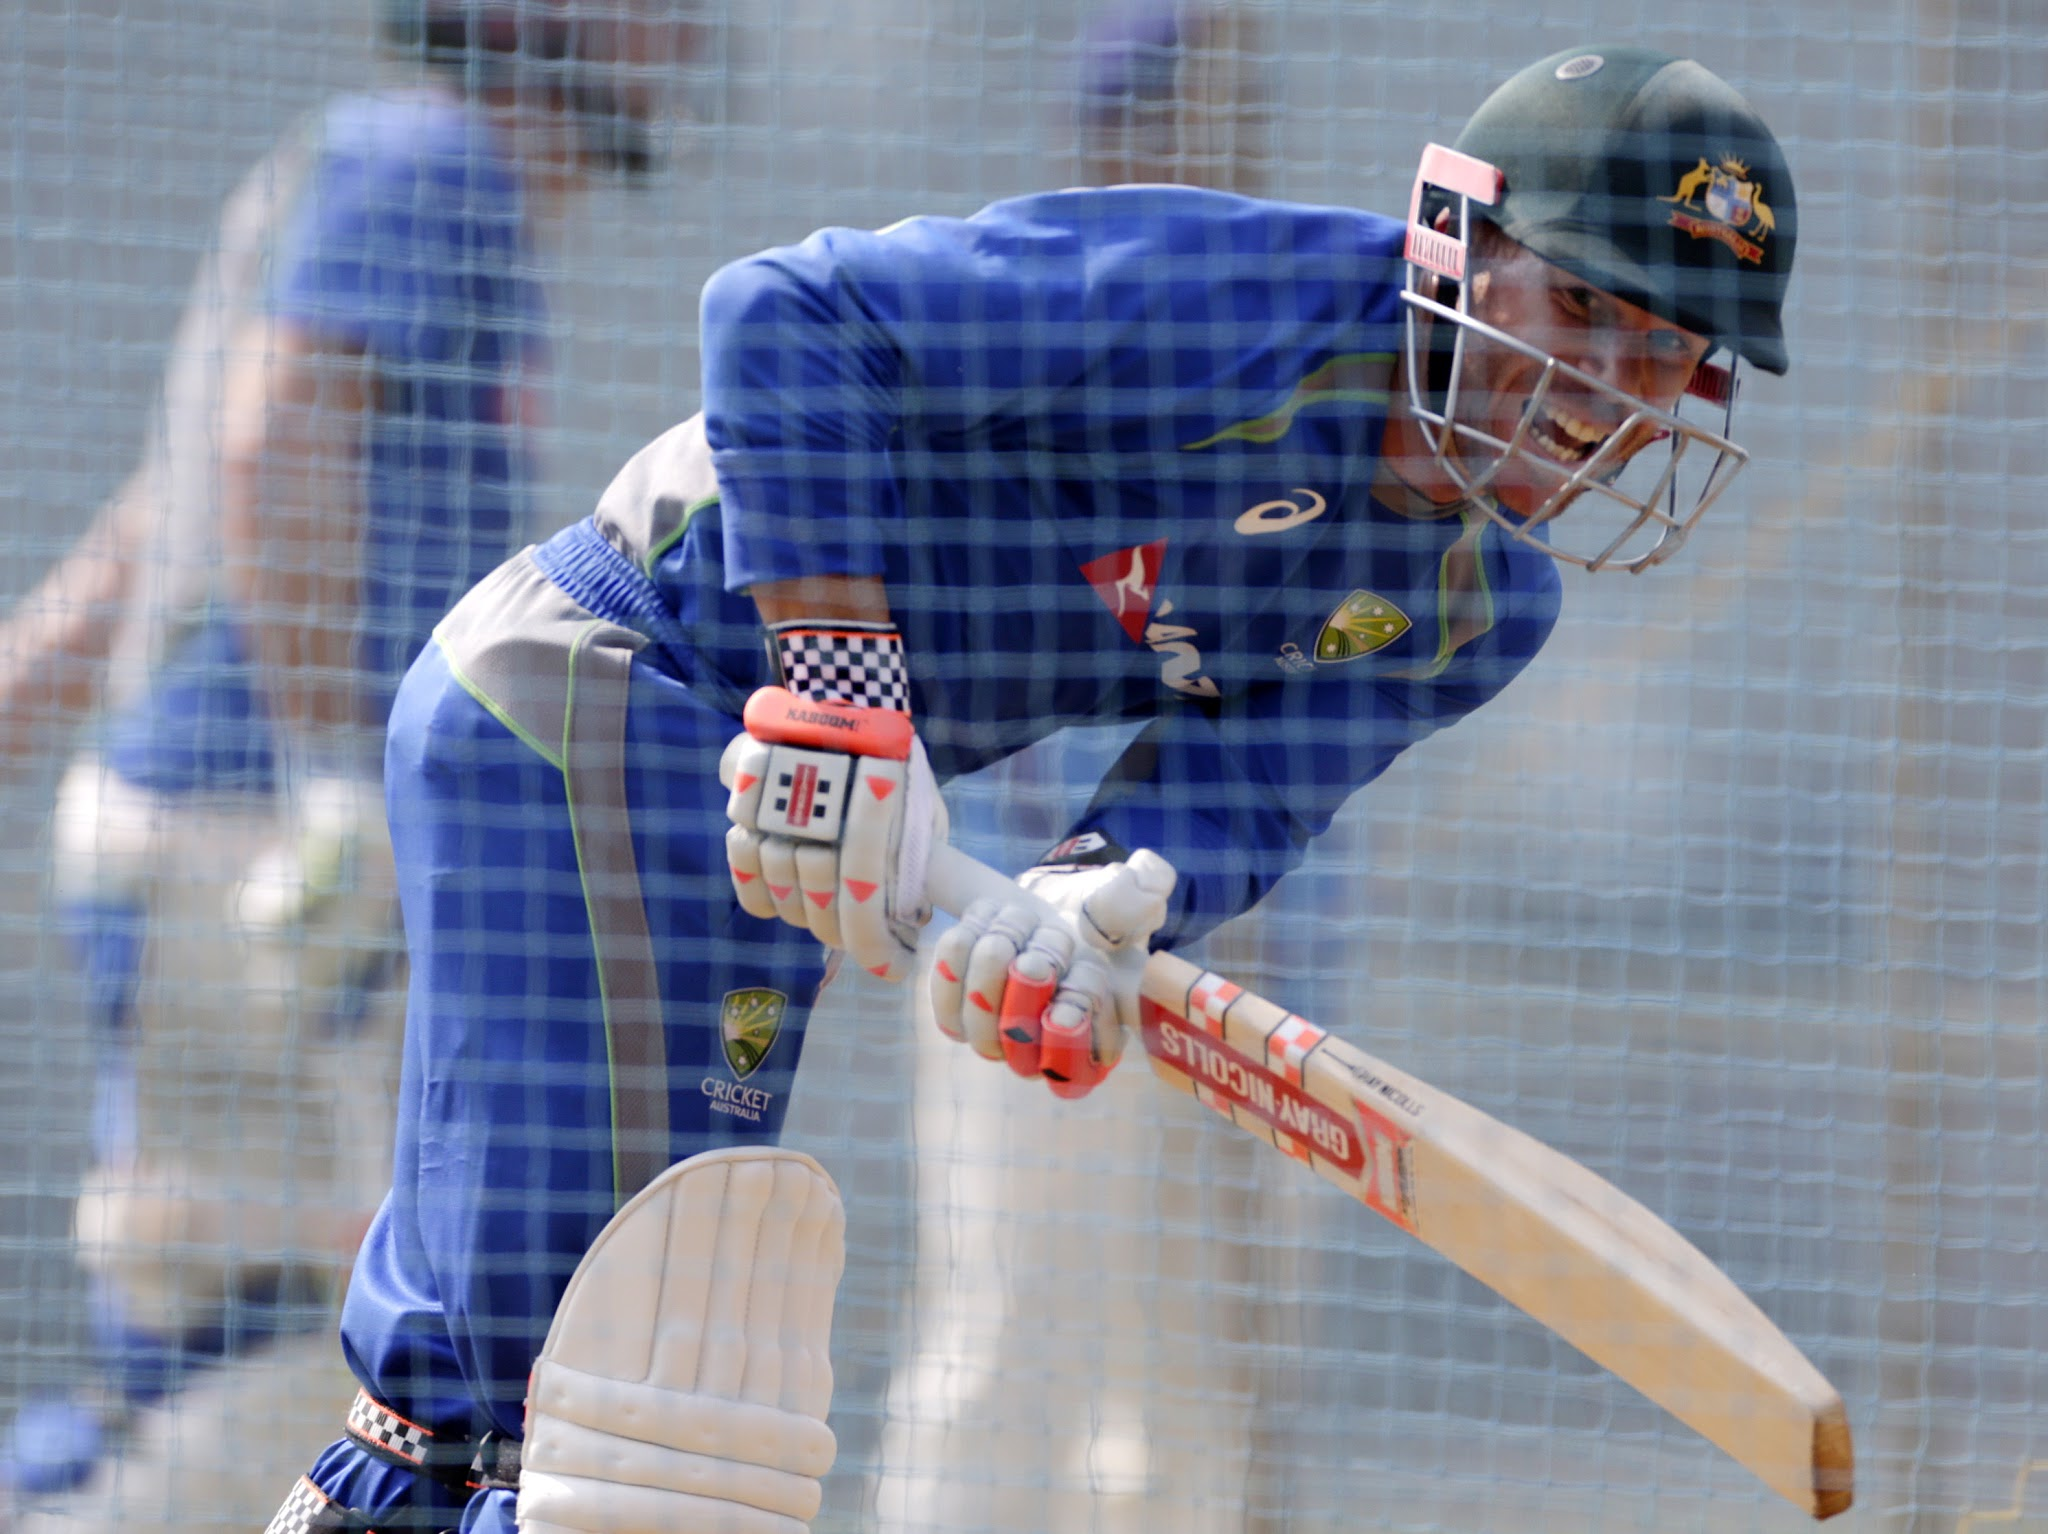 Australian cricketer David Warner bats during a practice session in Mumbai